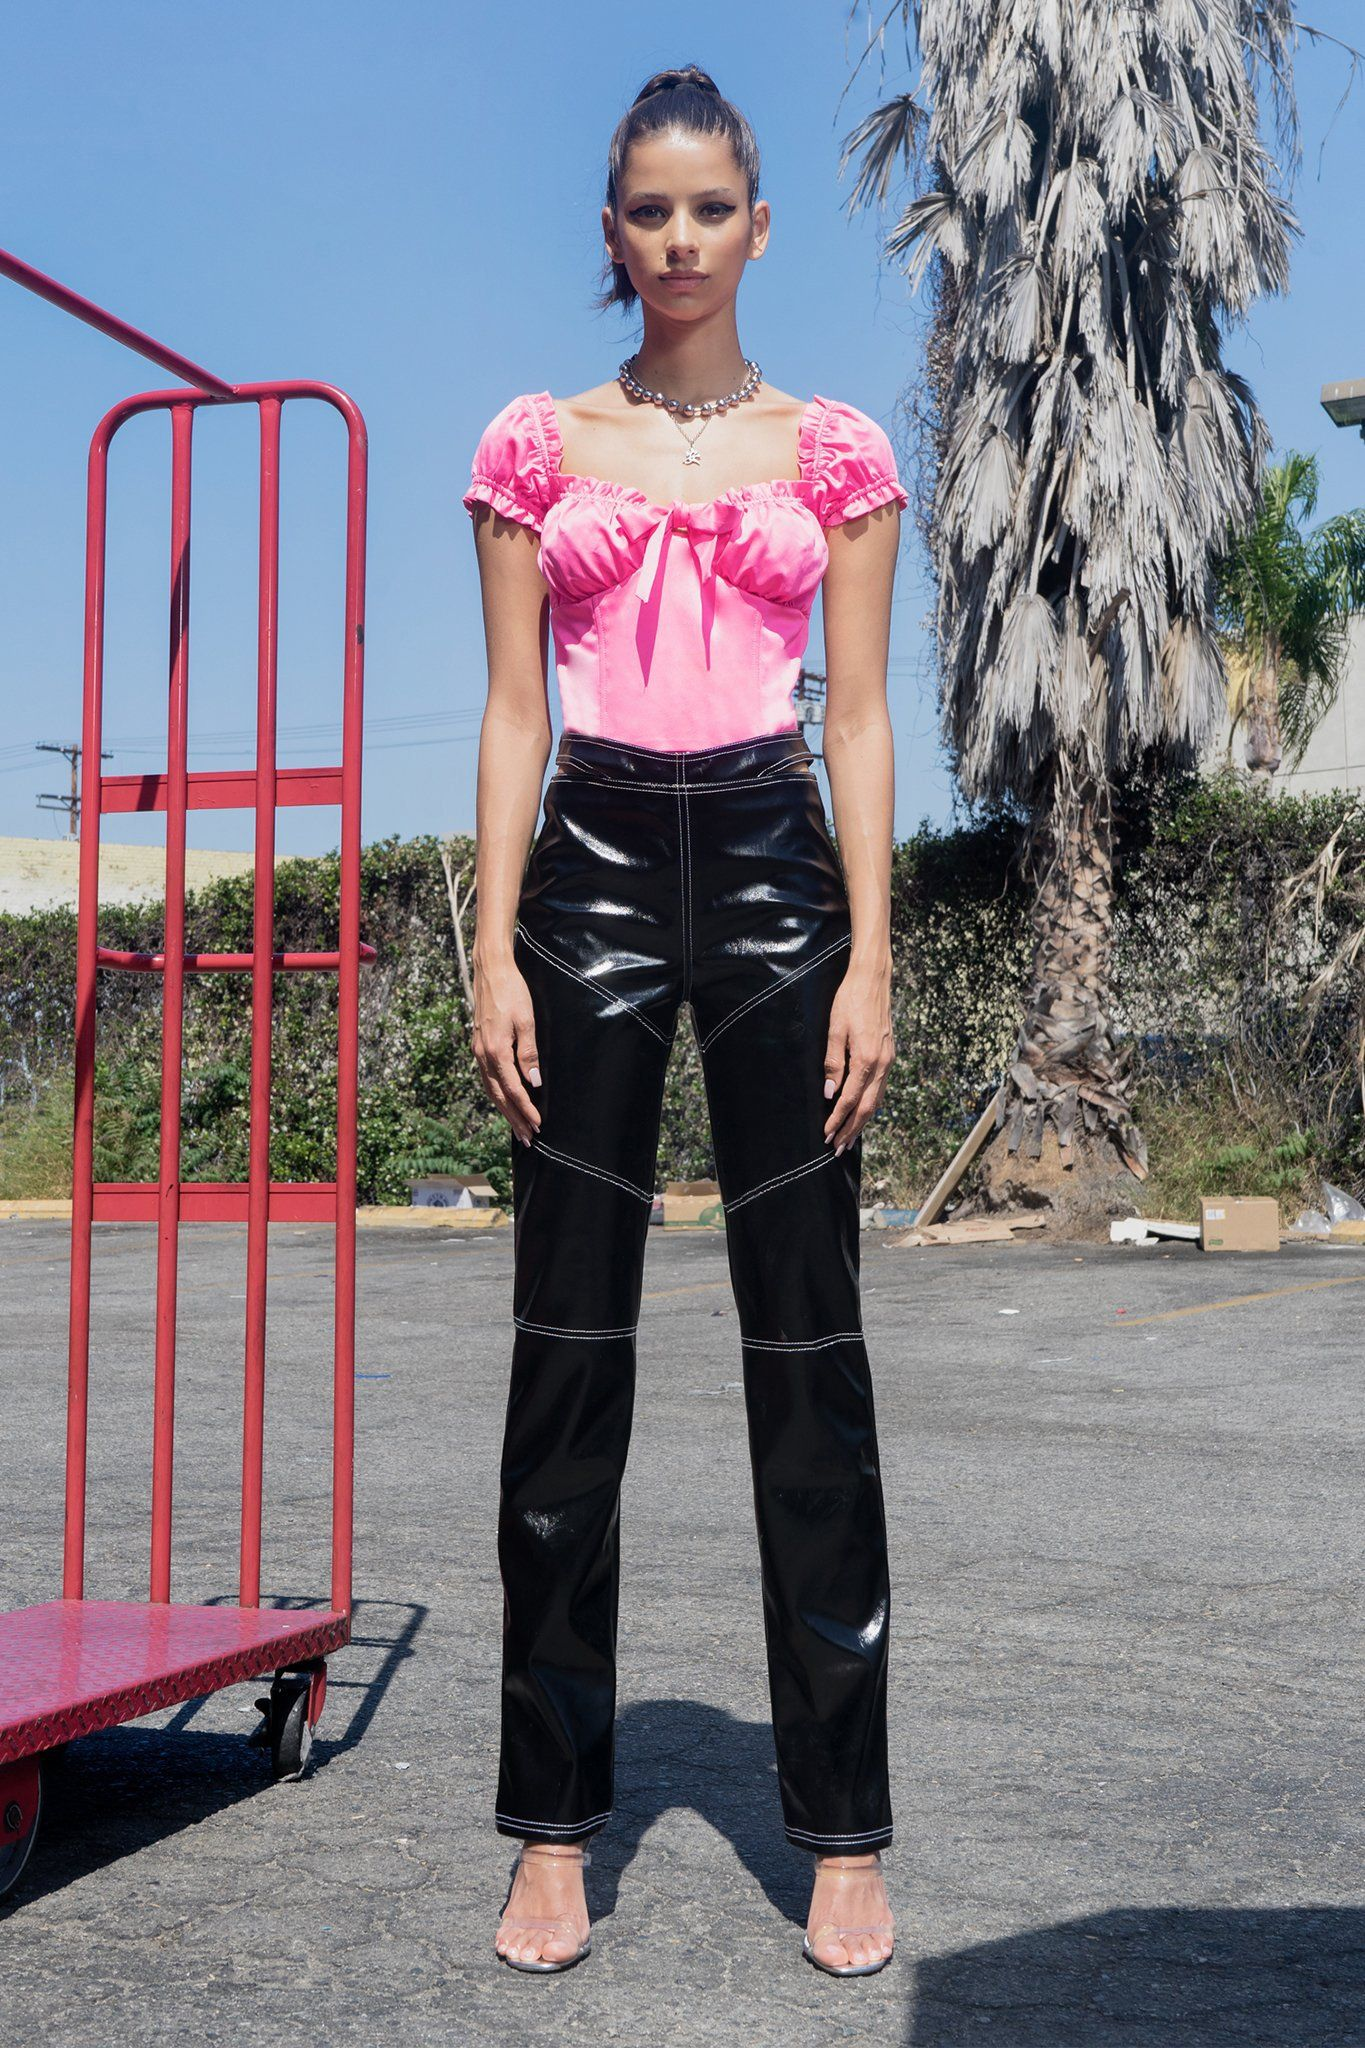 b47a700abef24 I.Am.Gia Naomi Top -  65  theradicalblog  outfit  womanoutfit  fluo  trend   fashion  top  naomi